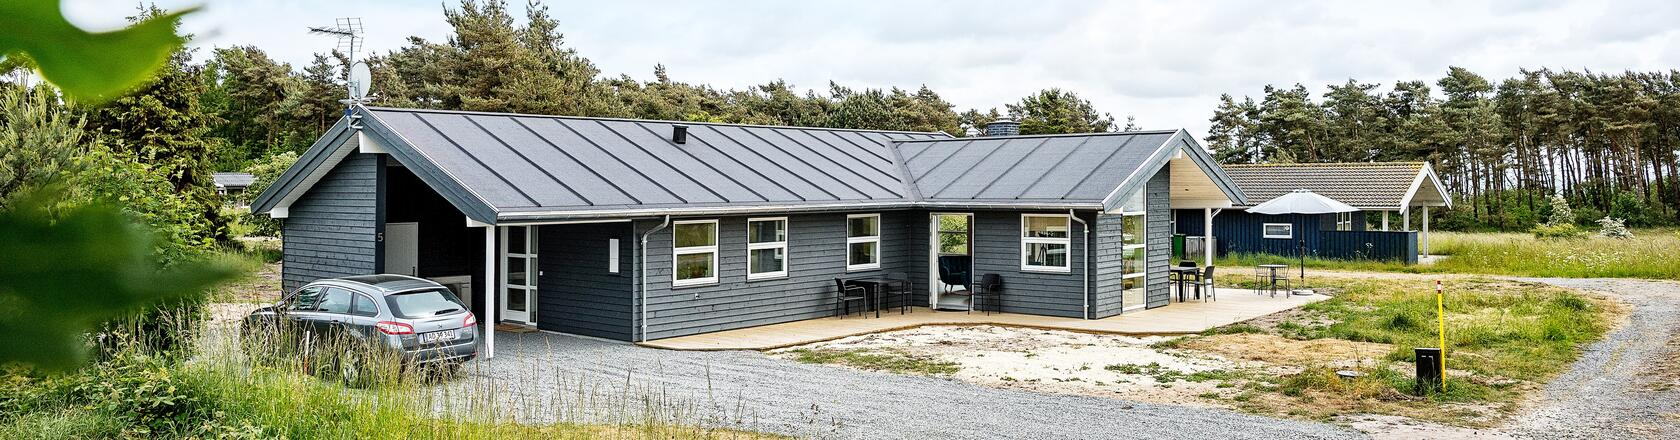 Gudhjem in Denmark - Rent a holiday home  with DanCenter